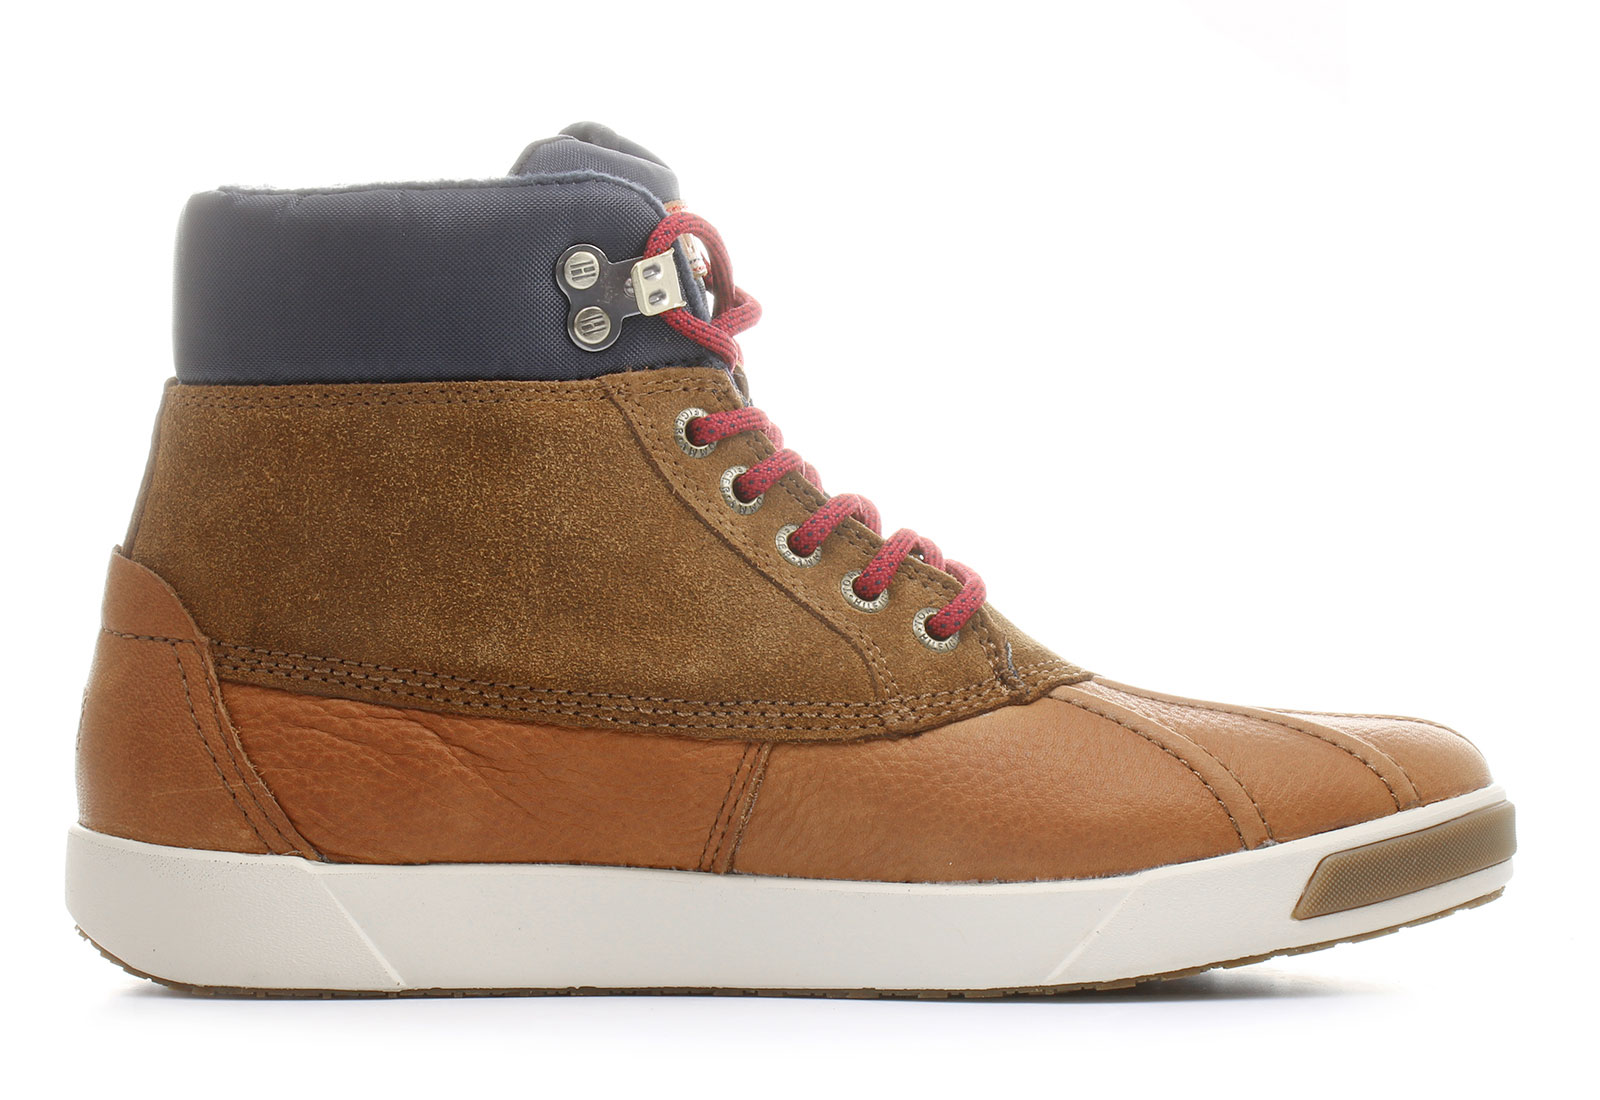 Tommy Hilfiger Shoes - Maverick 4a2 - 16F-1675-906 - Online shop for sneakers, shoes and boots